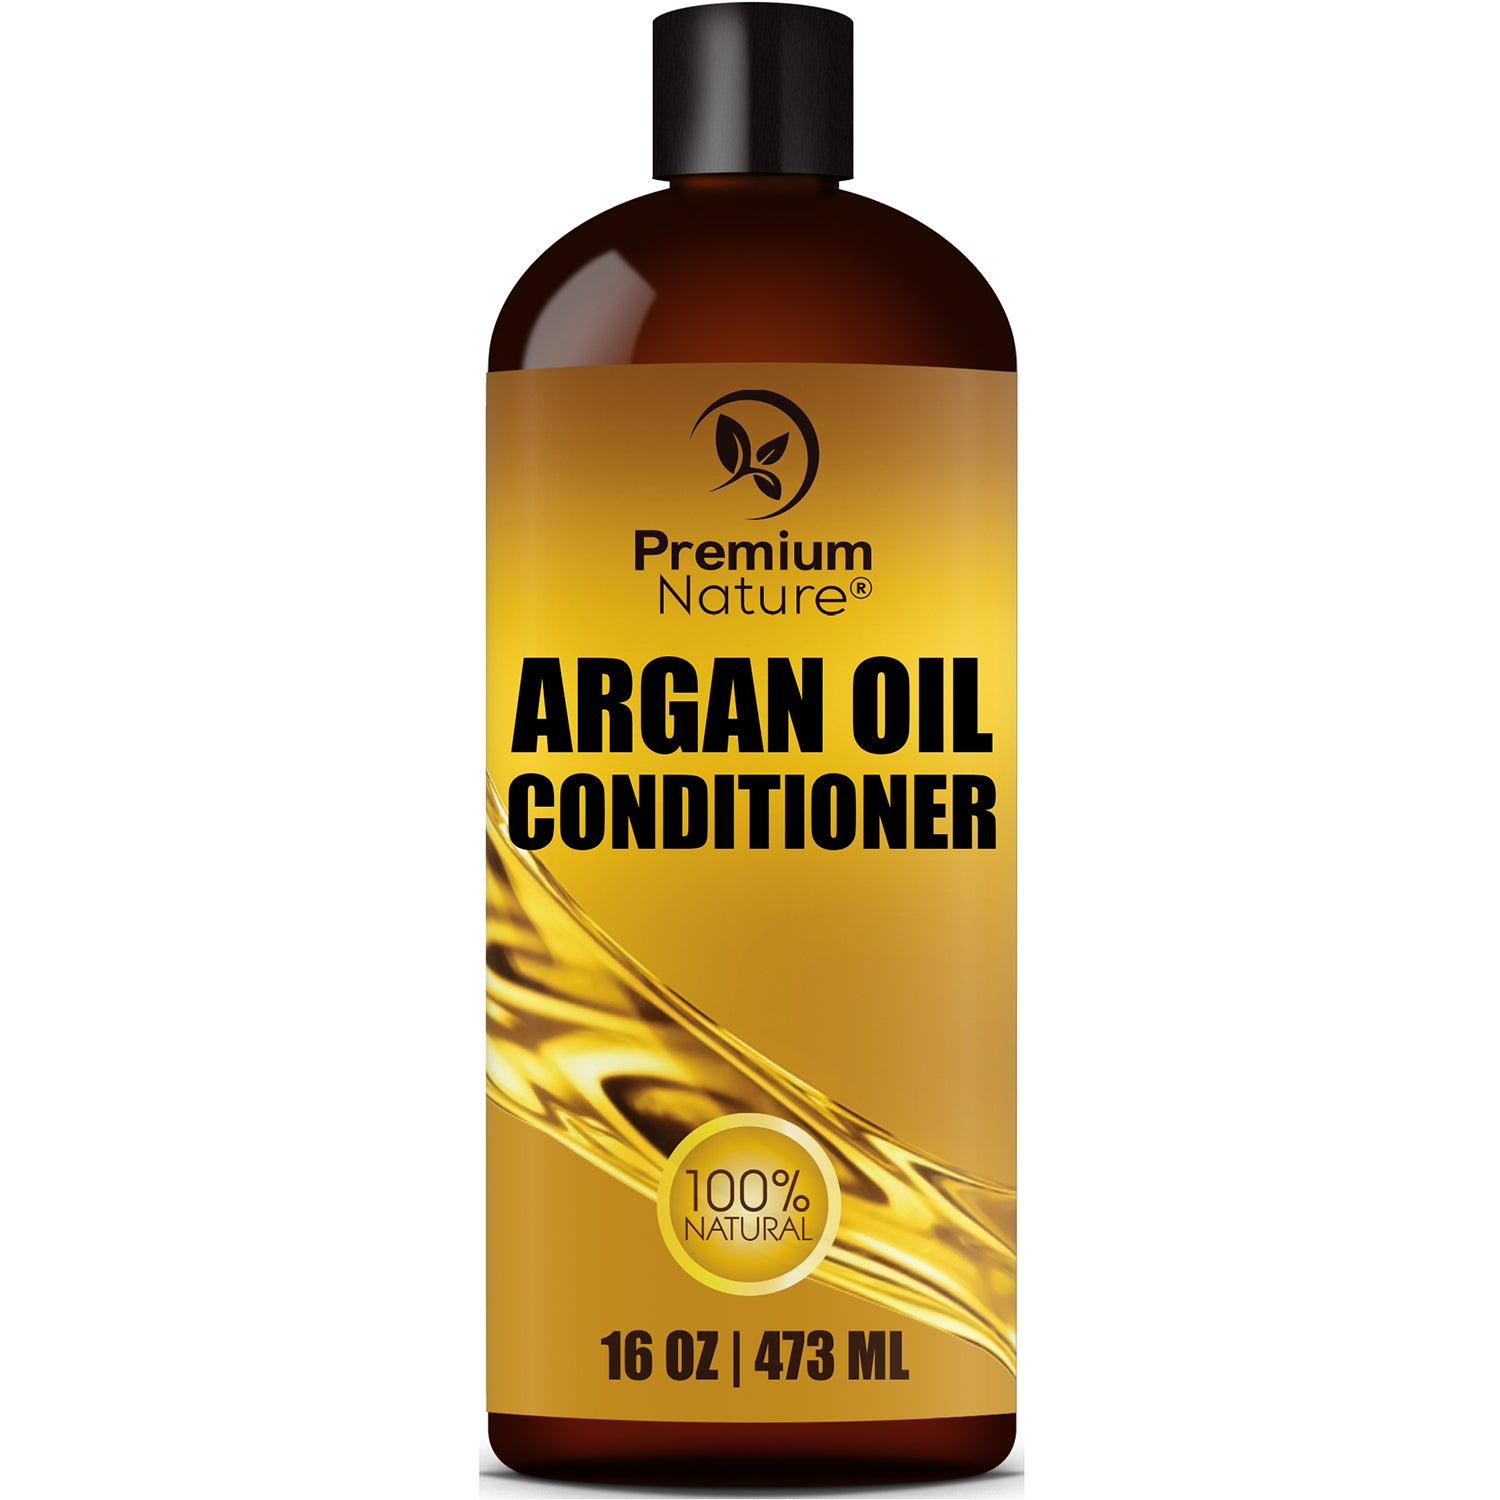 ARGAN OIL CONDITIONER BY PREMIUM NATURE